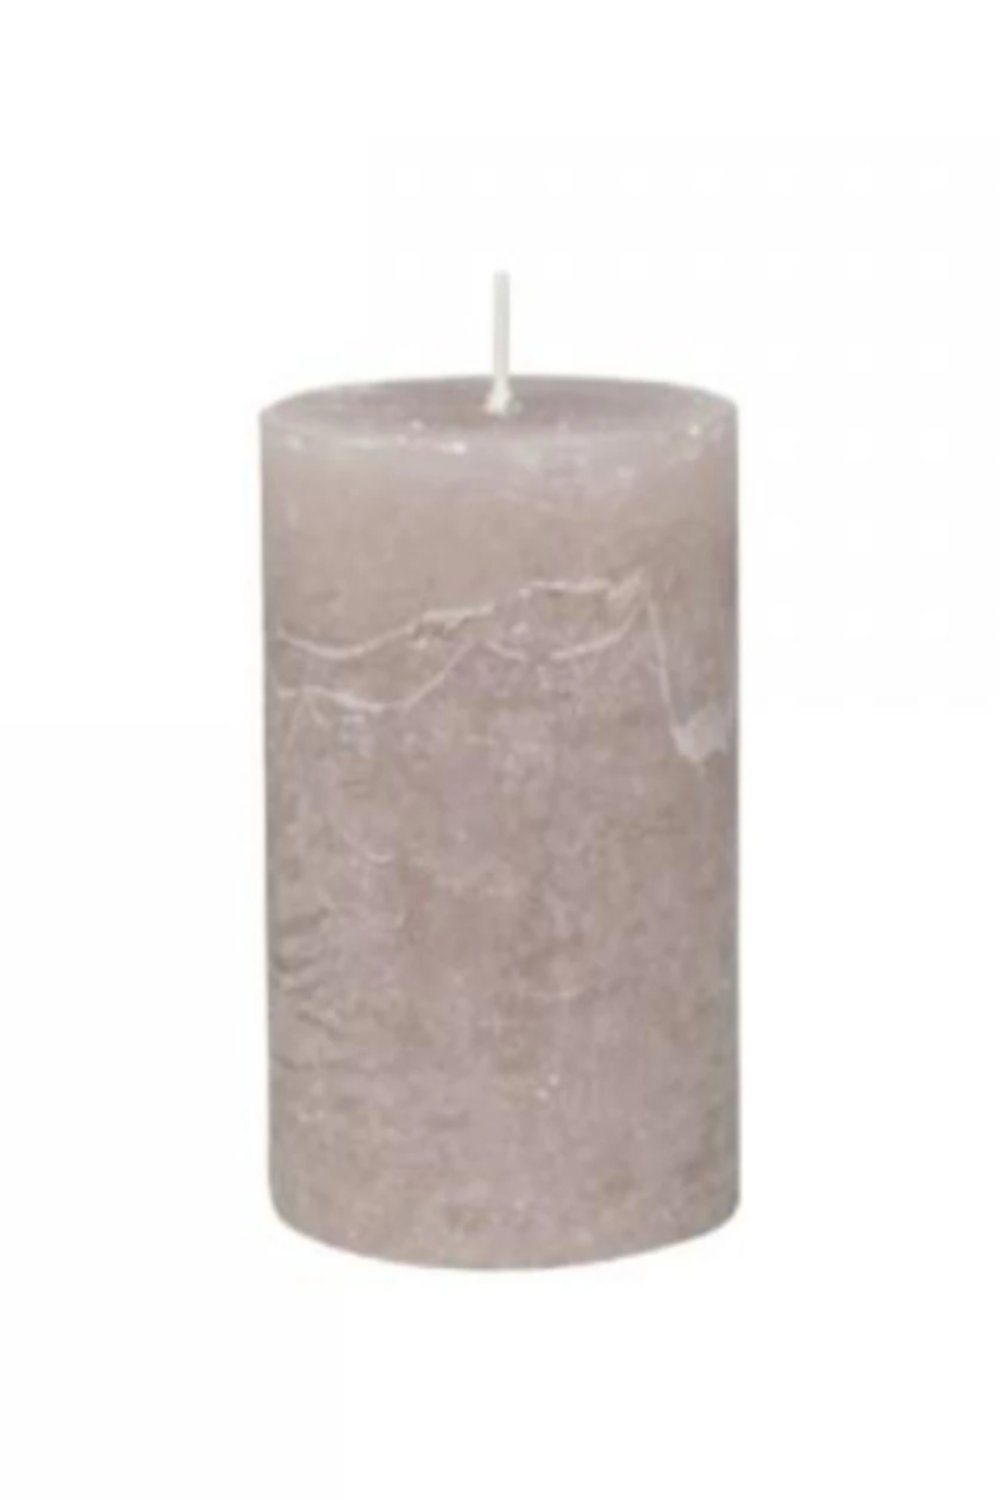 Rustic Pillar Candle - Taupe Candles & Fragrance Blume 10x7cm